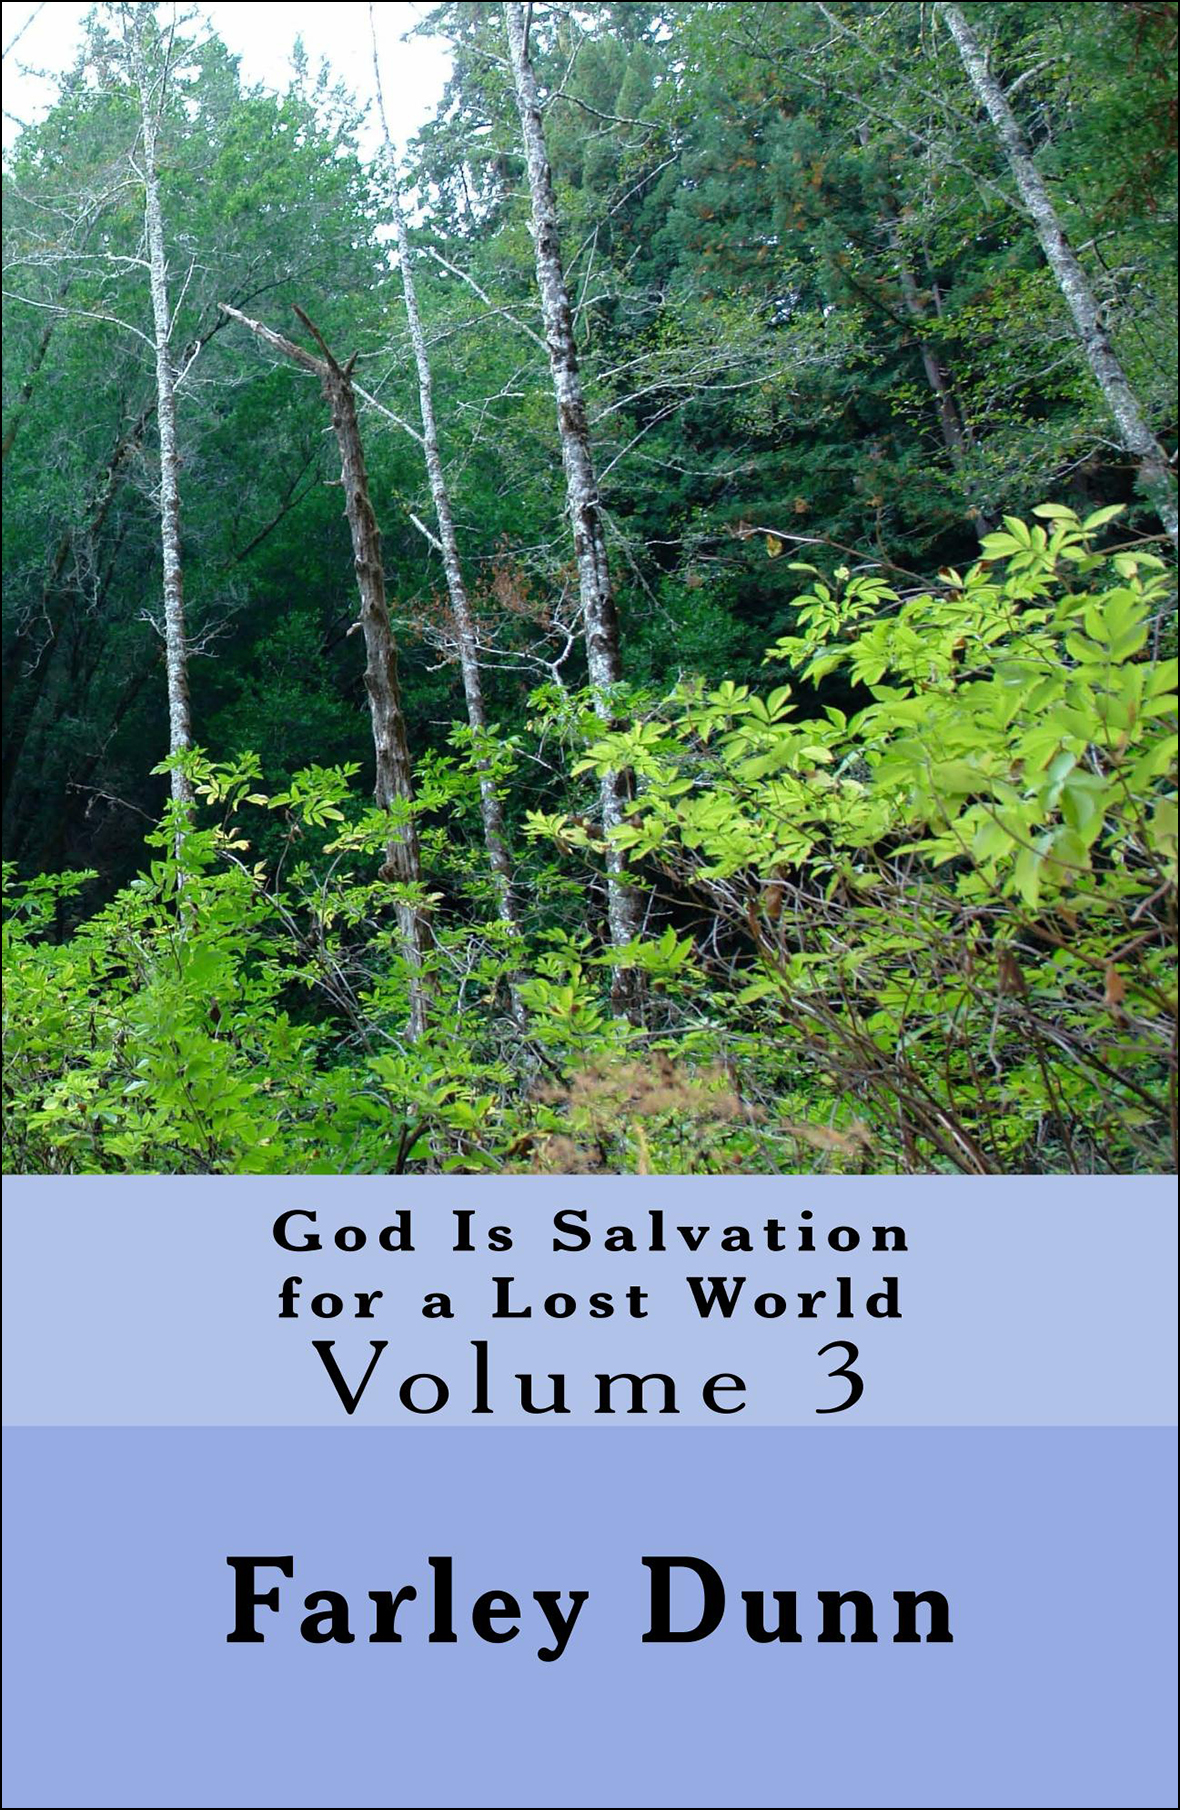 God Is Salvation for Cover for web insertion Vol 3